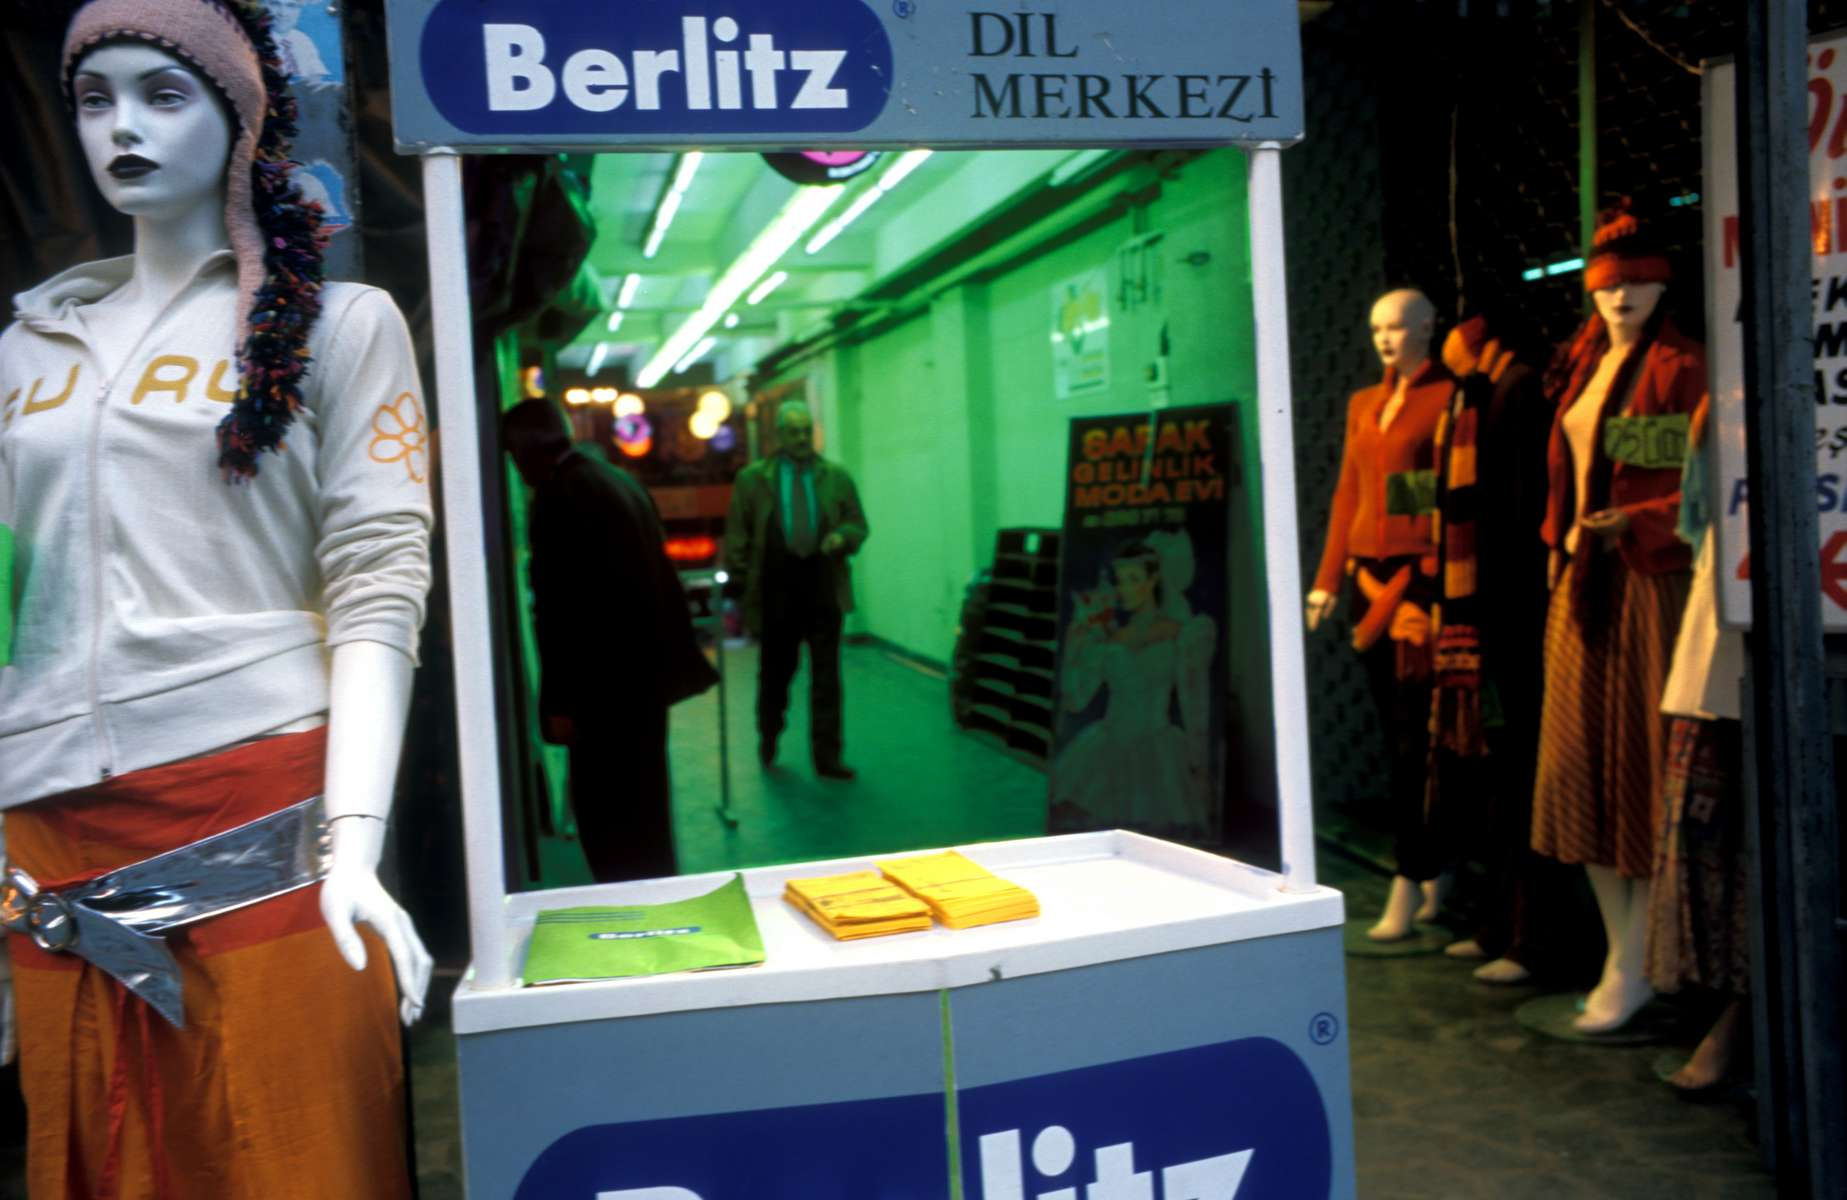 On Istiklal Caddesi, Istanbul\'s busy pedestrian street, mannequins line a shopping arcade, with an information booth for a Berlitz language program in front. Istiklal is filled with western-style clothing stores and international name-brand boutiques -- a reflection of the western values and culture held by many Turks. November 2004.